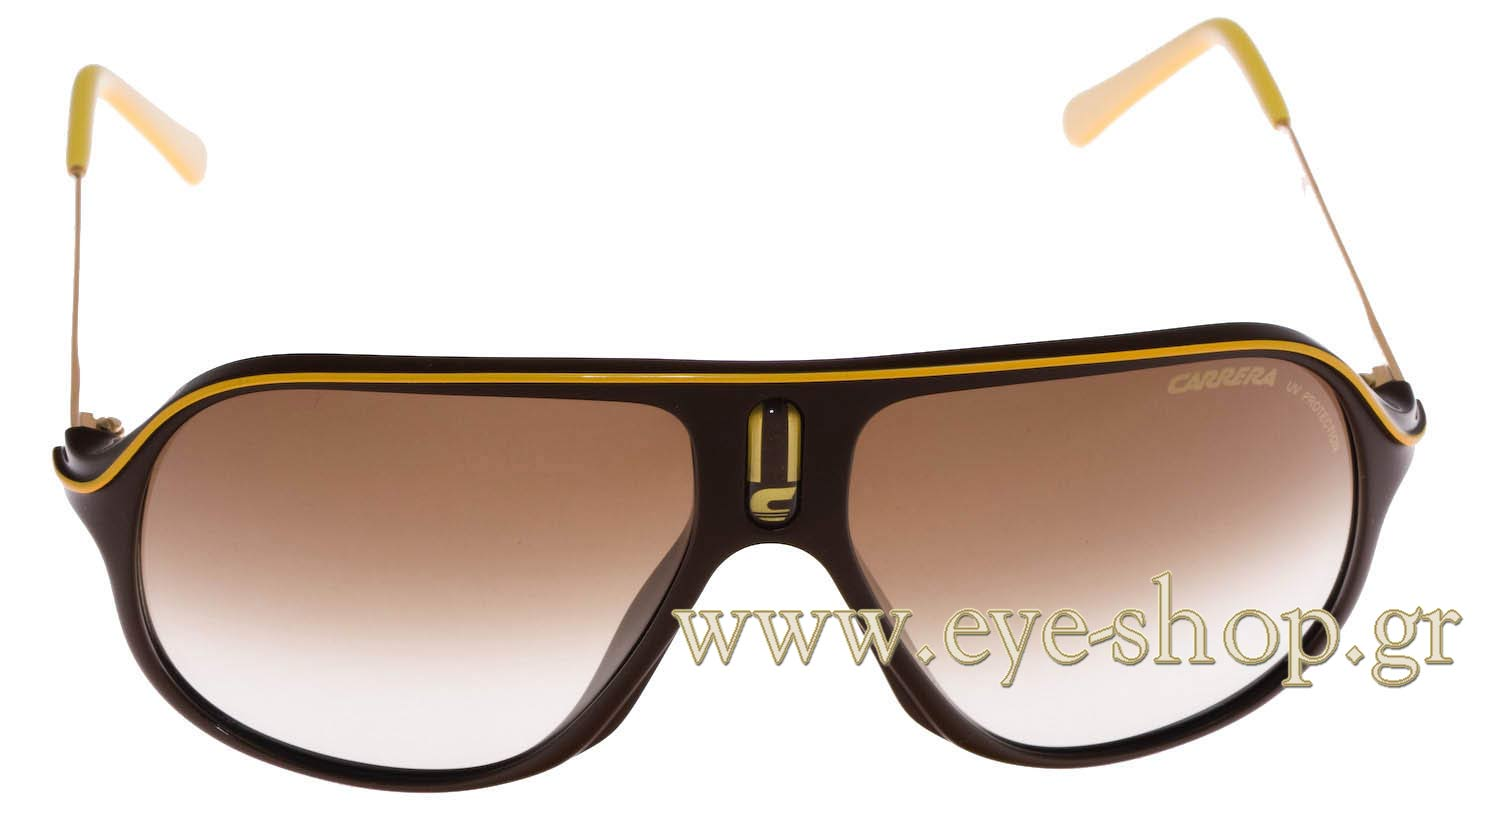 00d6cd31d304 CARRERA SAFARI /A G16-DB 62 | ΓΥΑΛΙΑ ΗΛΙΟΥ Unisex ver1. Eye-Shop